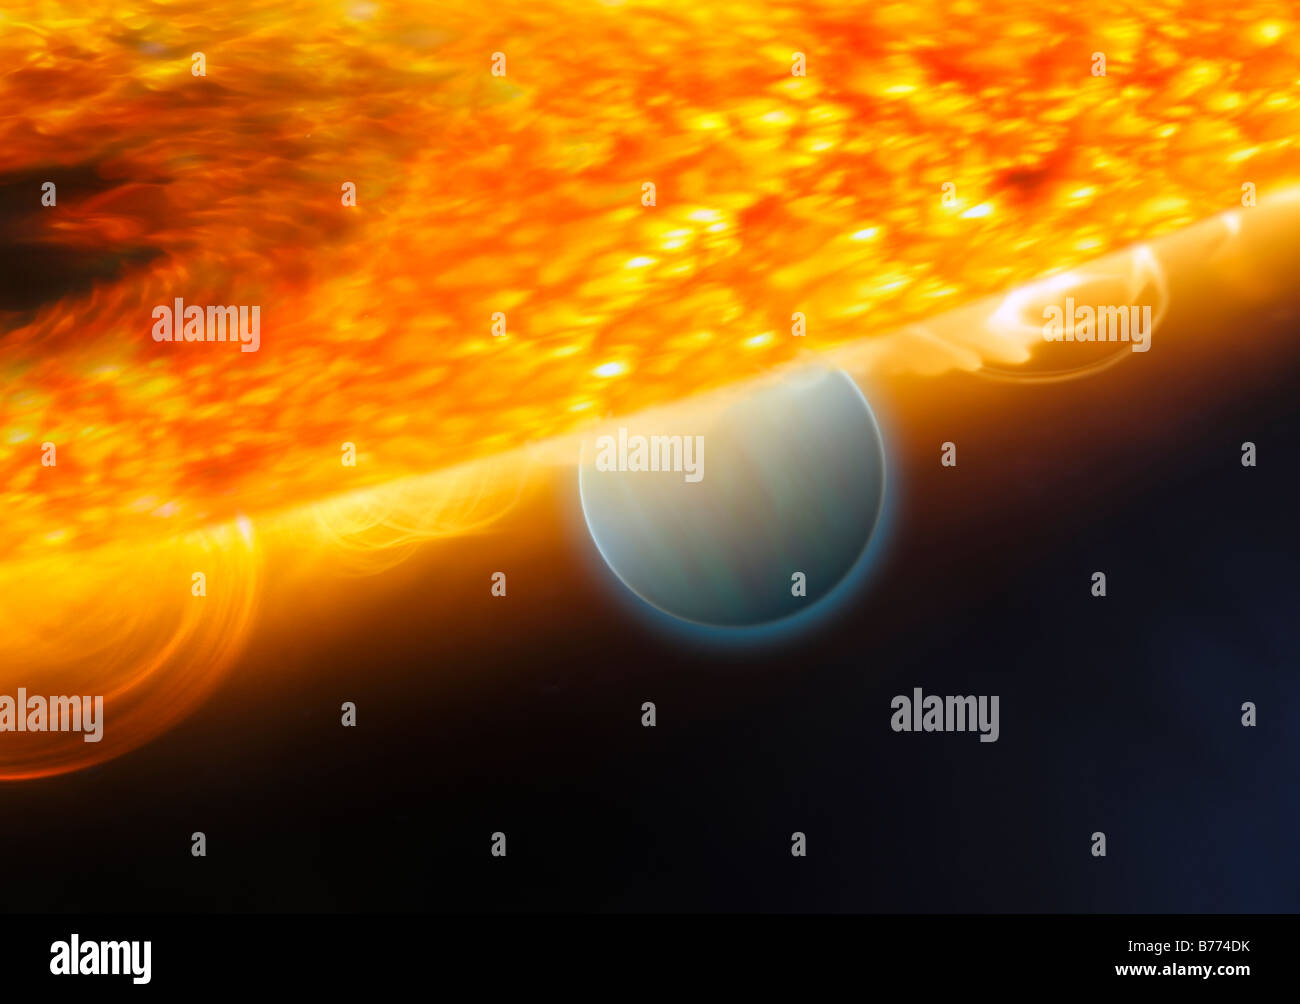 An artist's impression of a Jupiter-size extrasolar planet being eclipsed by its parent star. - Stock Image